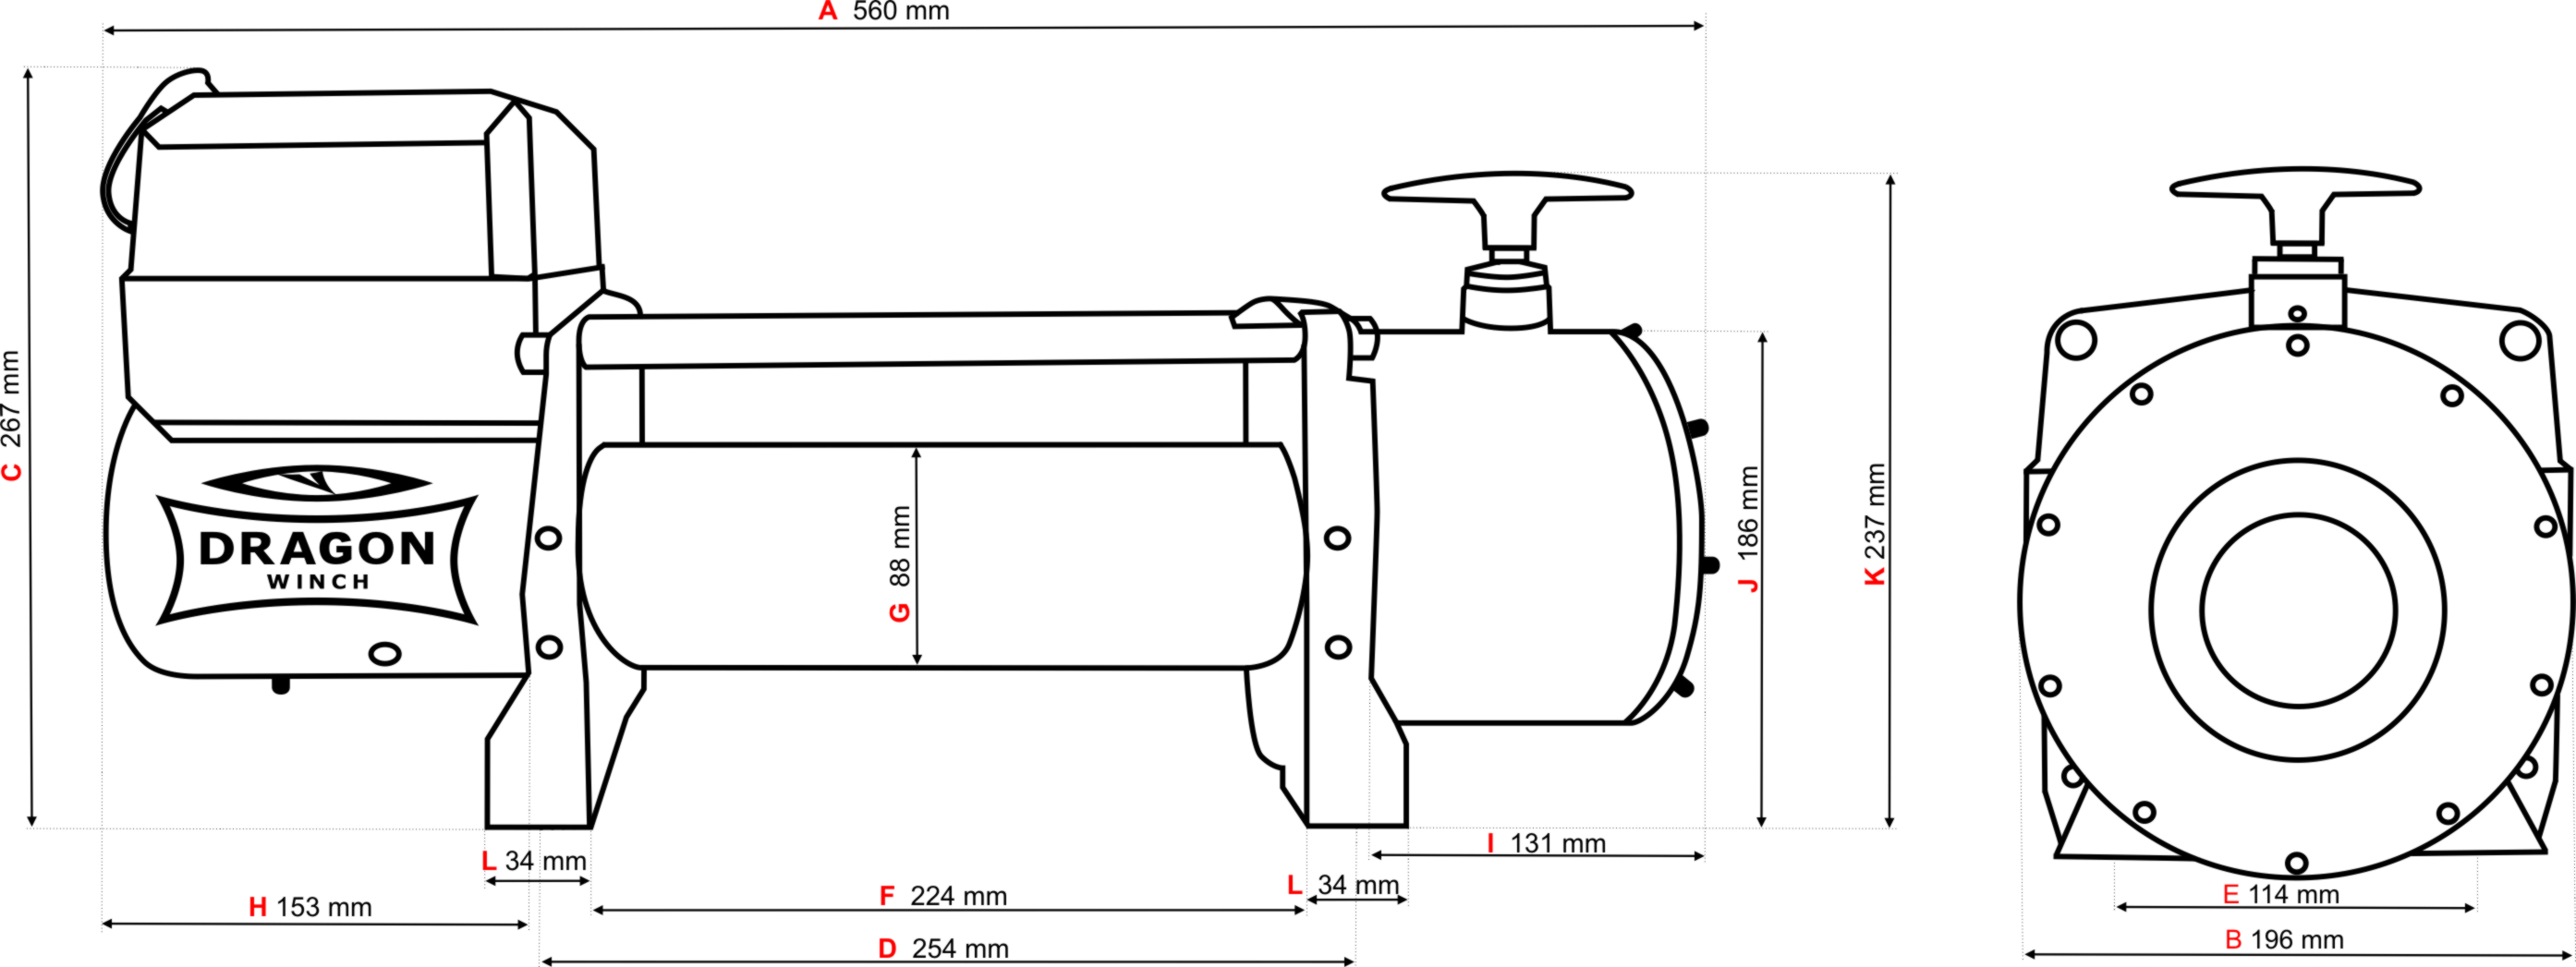 In Set Dwt 15000 Hd Power Switch Dragon Winch Wiring Diagram Opisdwt15000 Continue Browsing